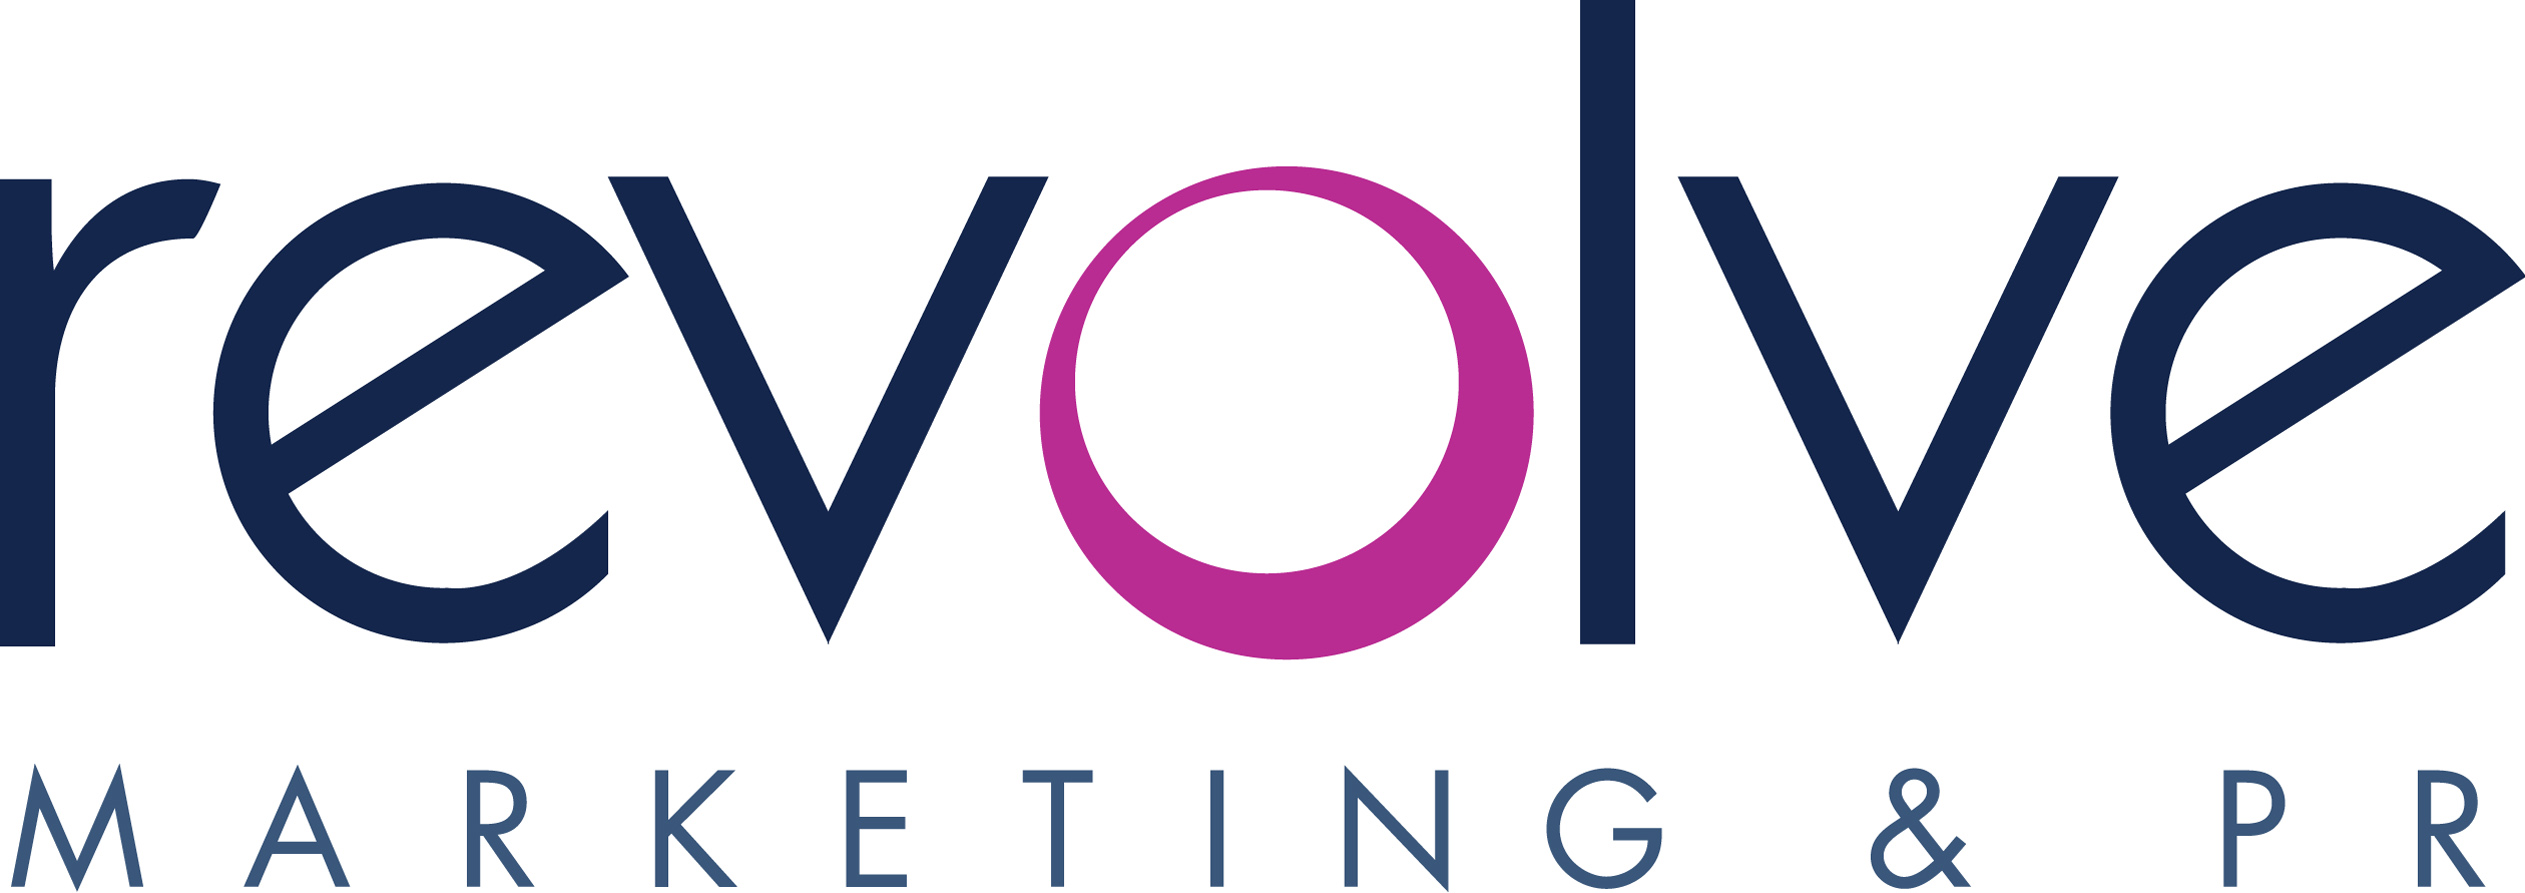 Revolve Marketing and PR Logo